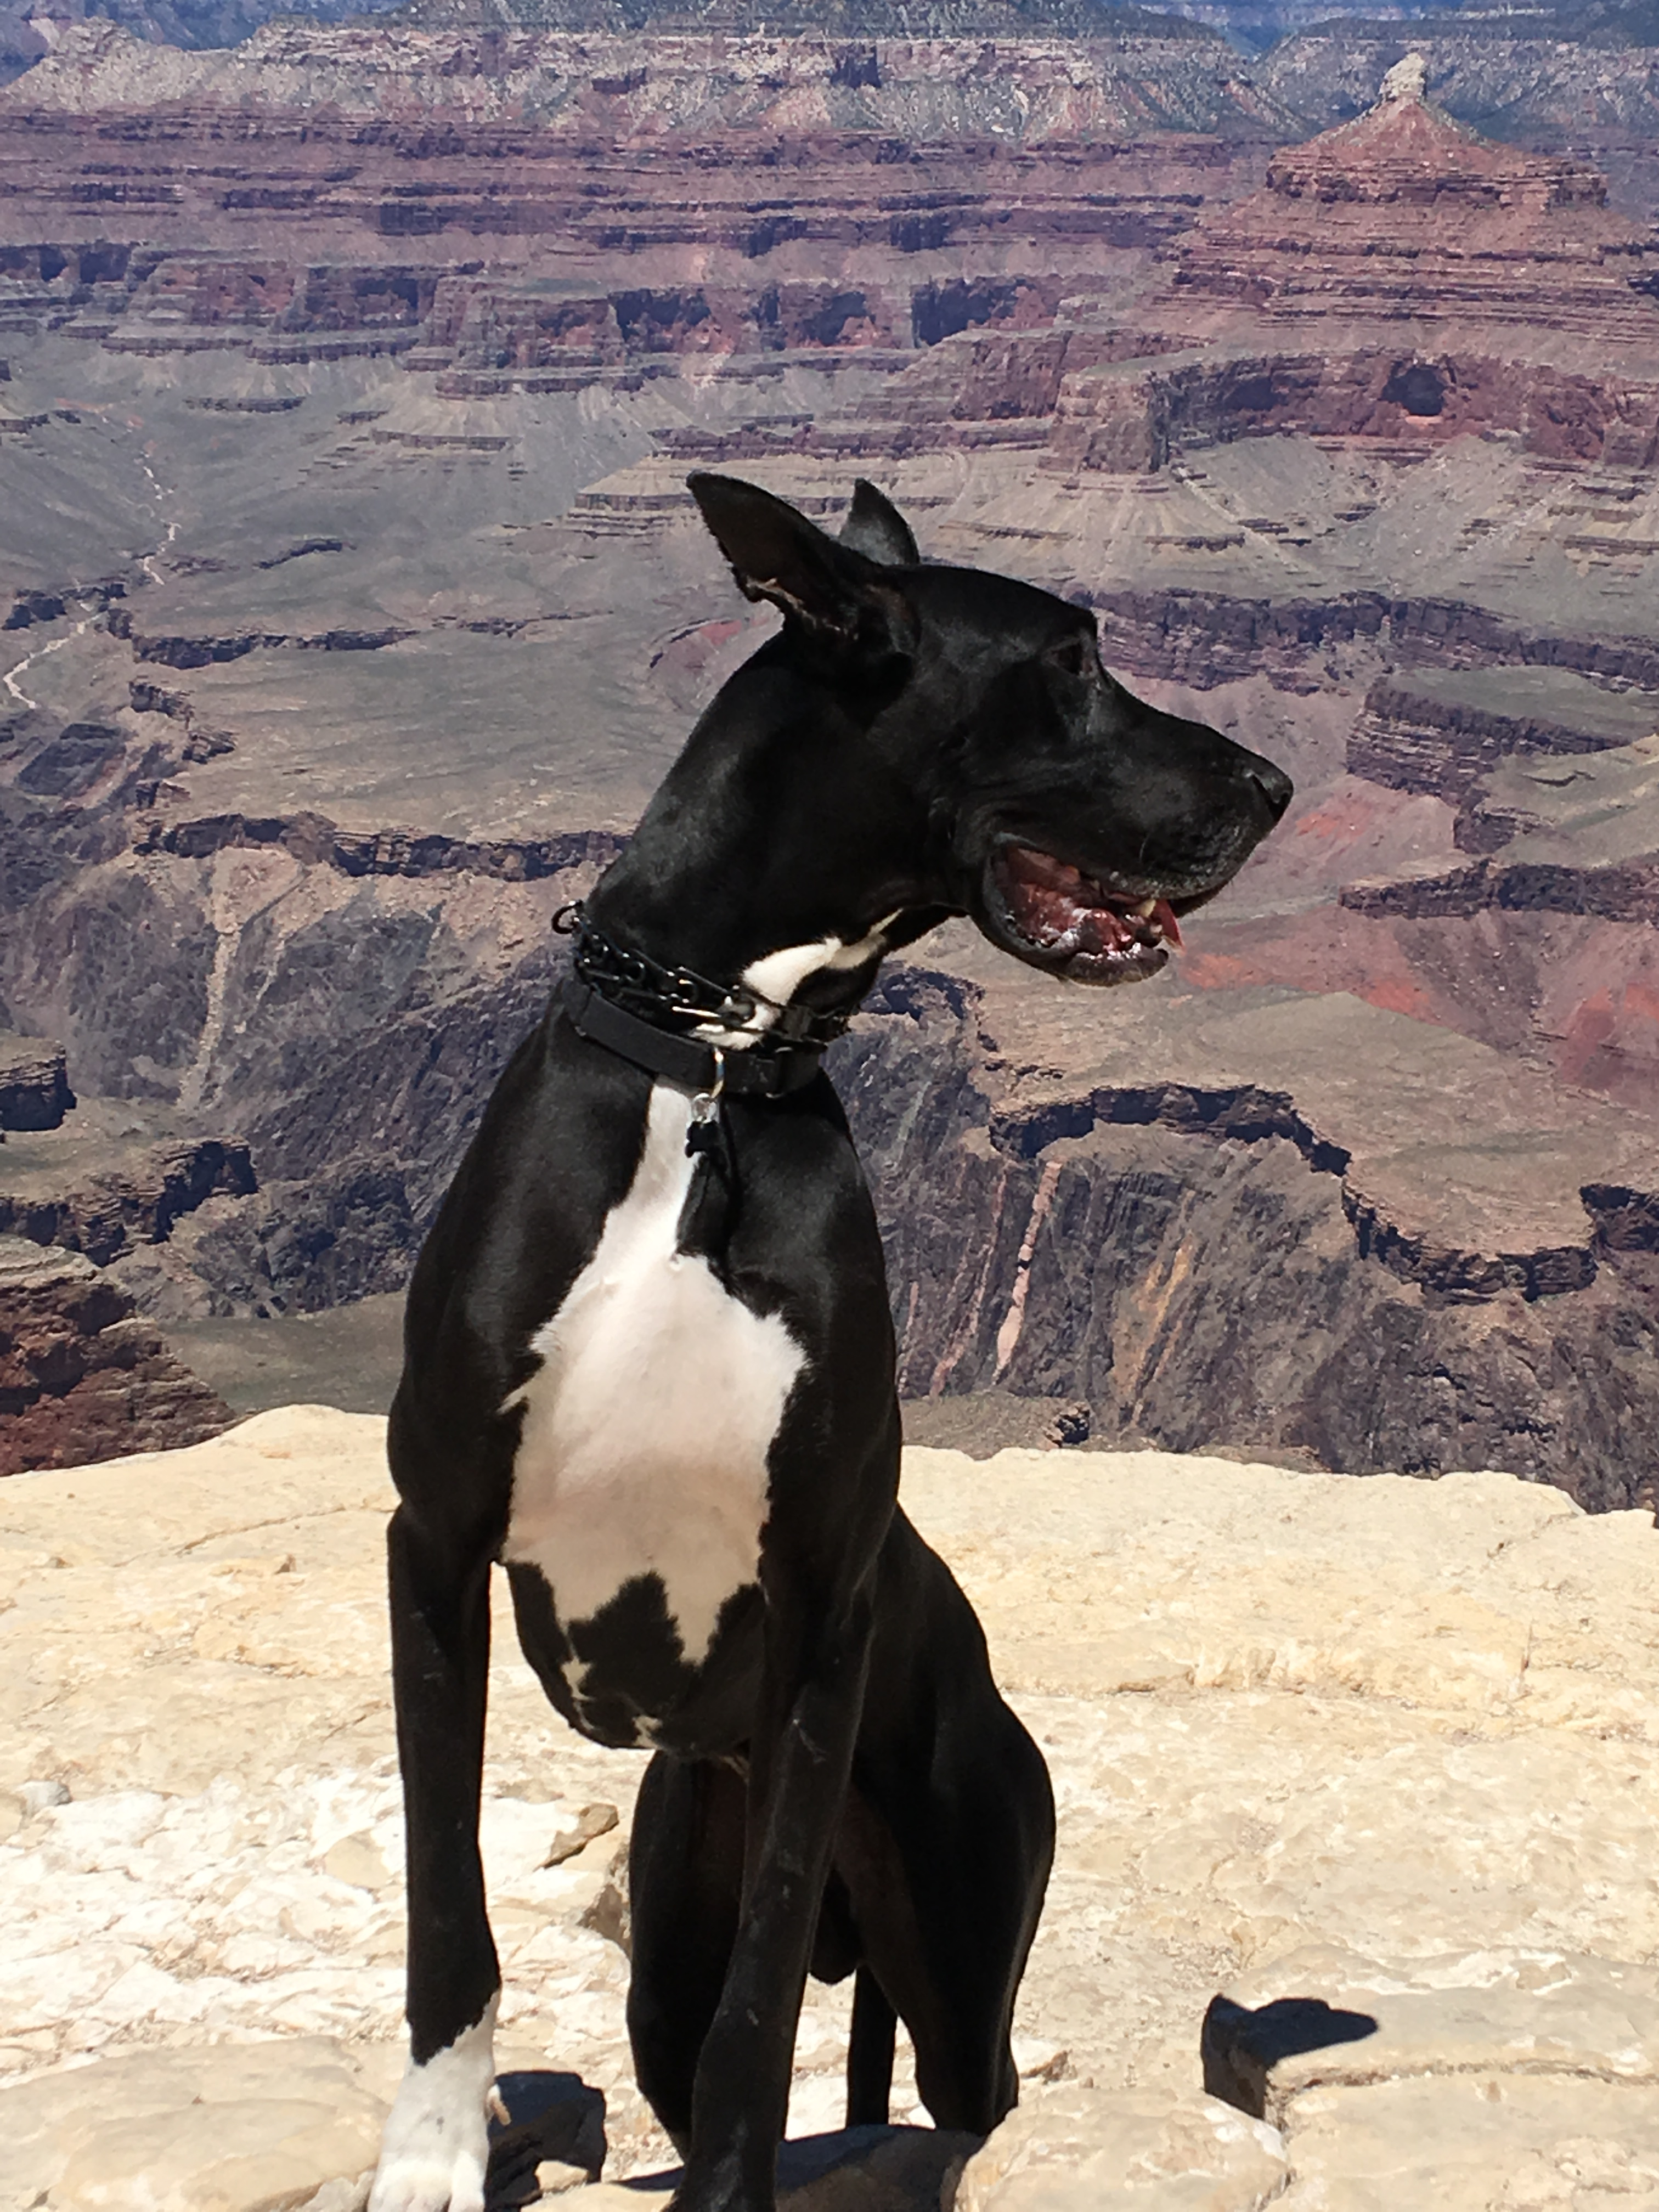 Bringing Your Pet to the Grand Canyon